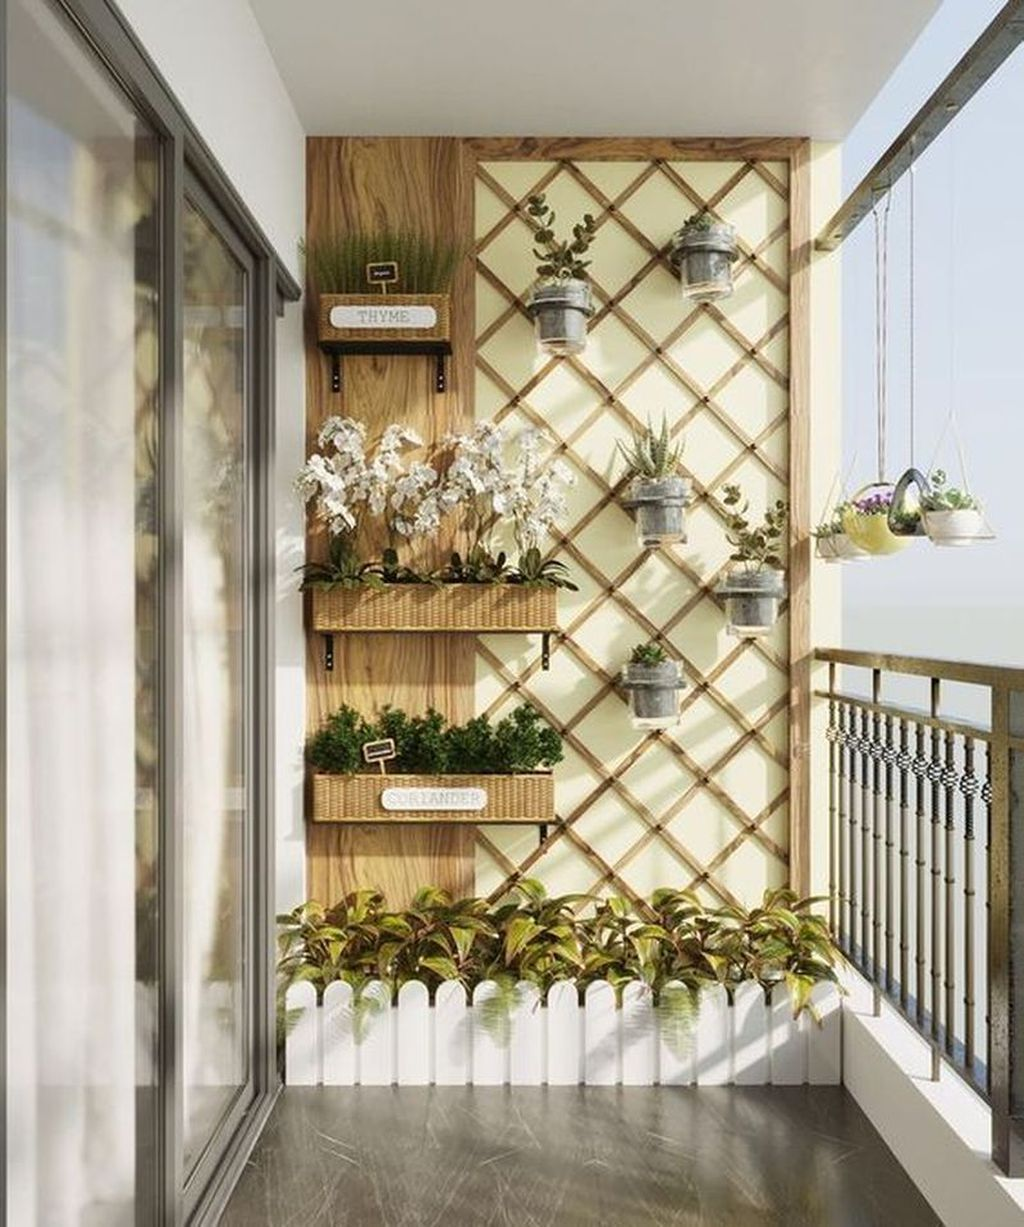 Photo of 34 Nice simple ideas for decorating apartments #apartments #Balcony Garden #Balc…